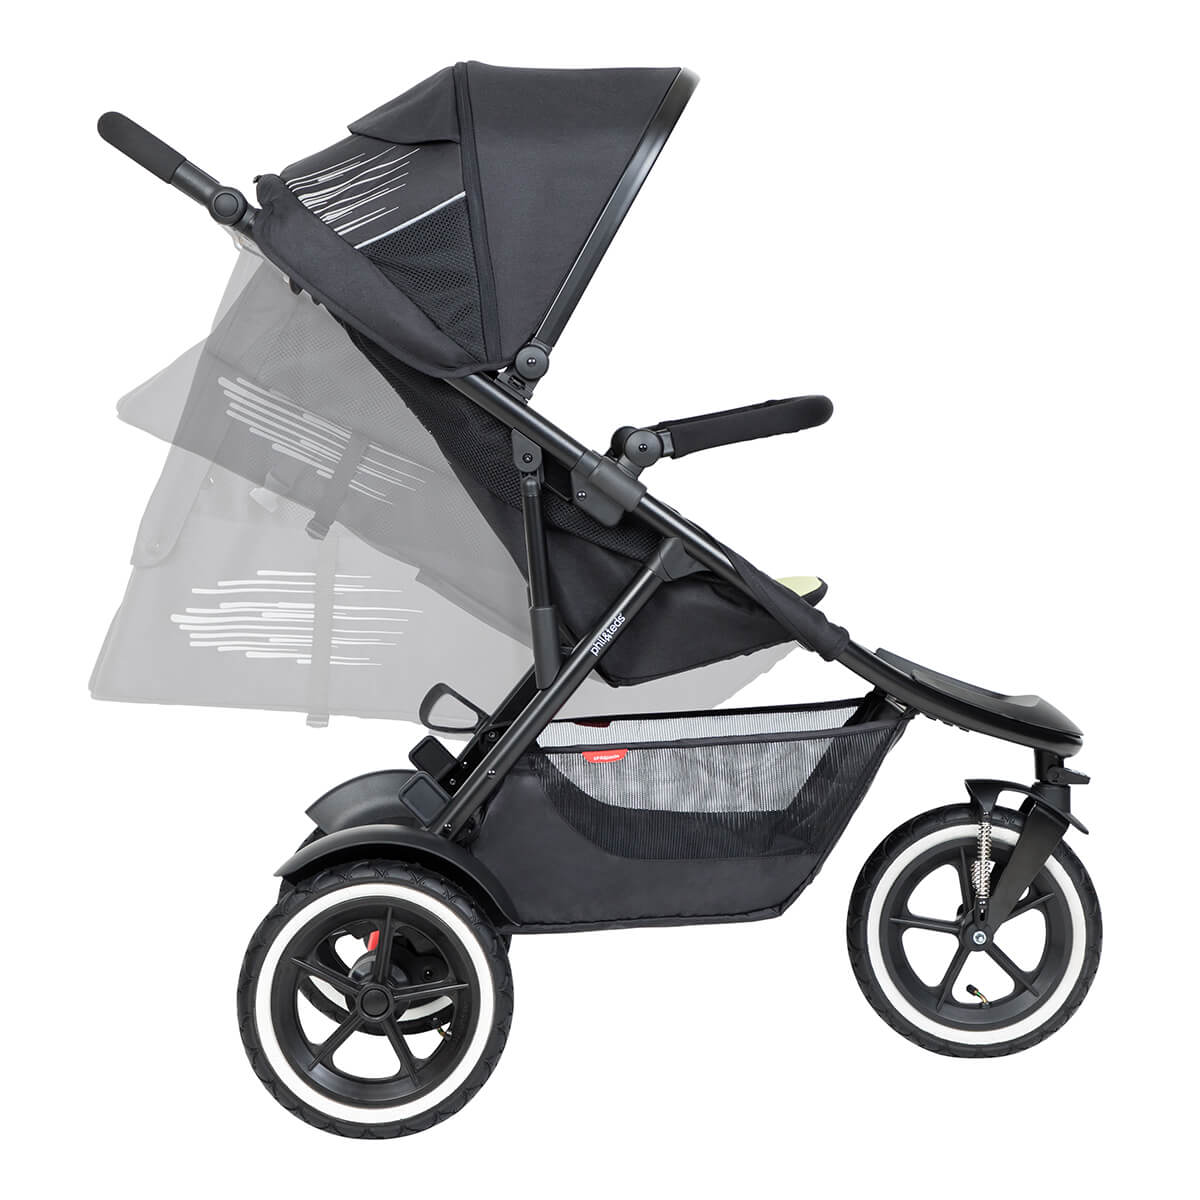 https://cdn.accentuate.io/4417276117026/19437753335986/philteds-sport-buggy-can-recline-in-multiple-angles-including-full-recline-for-newborn-baby-v1626482705444.jpg?1200x1200